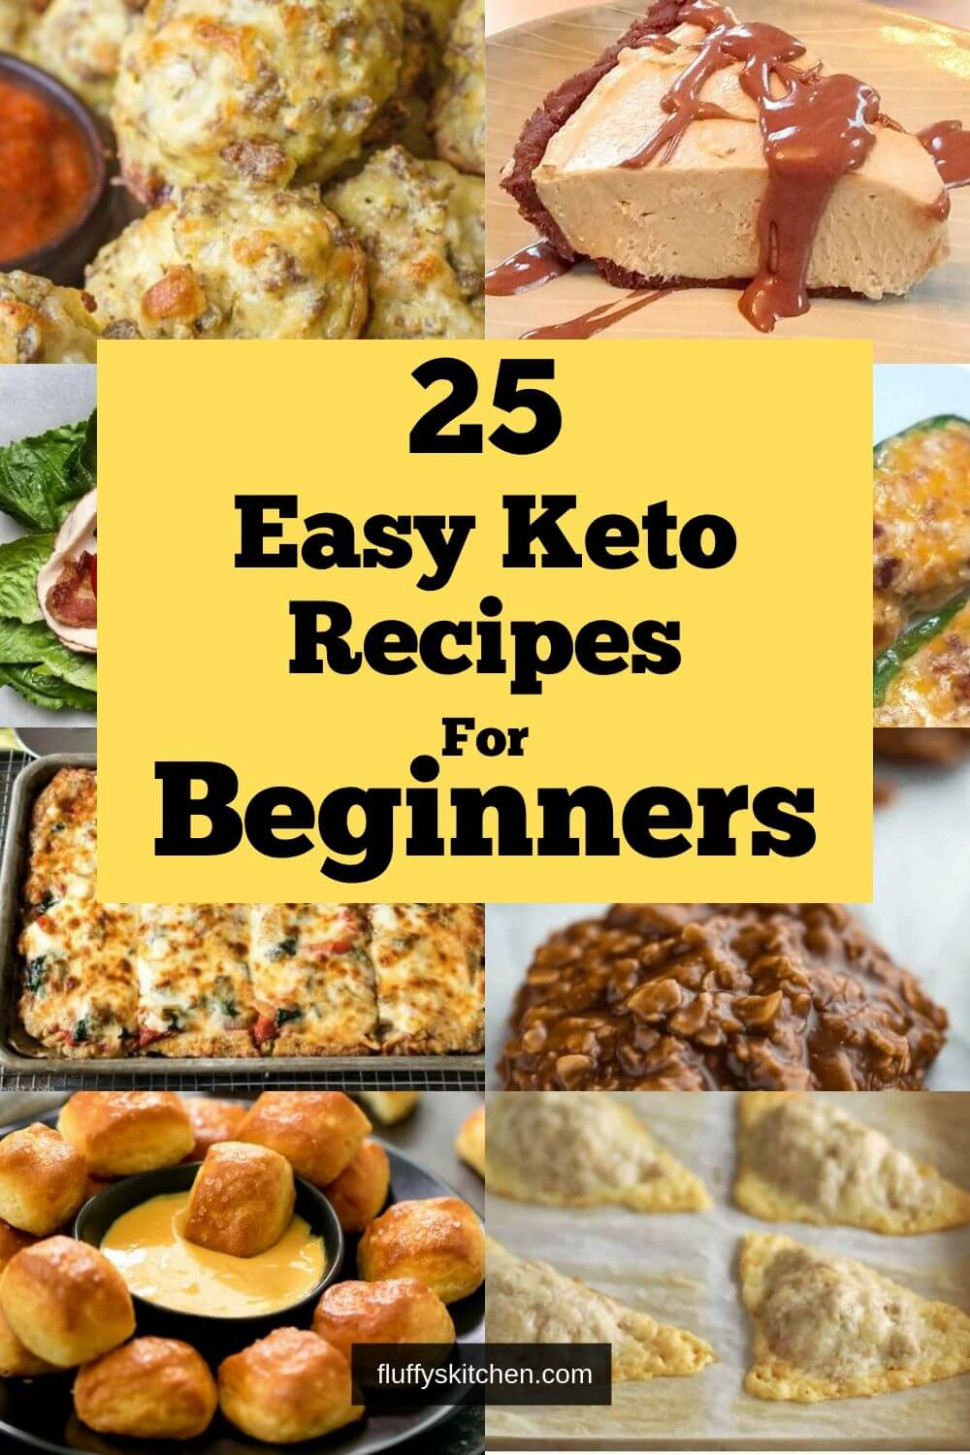 13 Easy Keto Recipes For Beginners - Fluffy's Kitchen - Food Recipes For Beginners